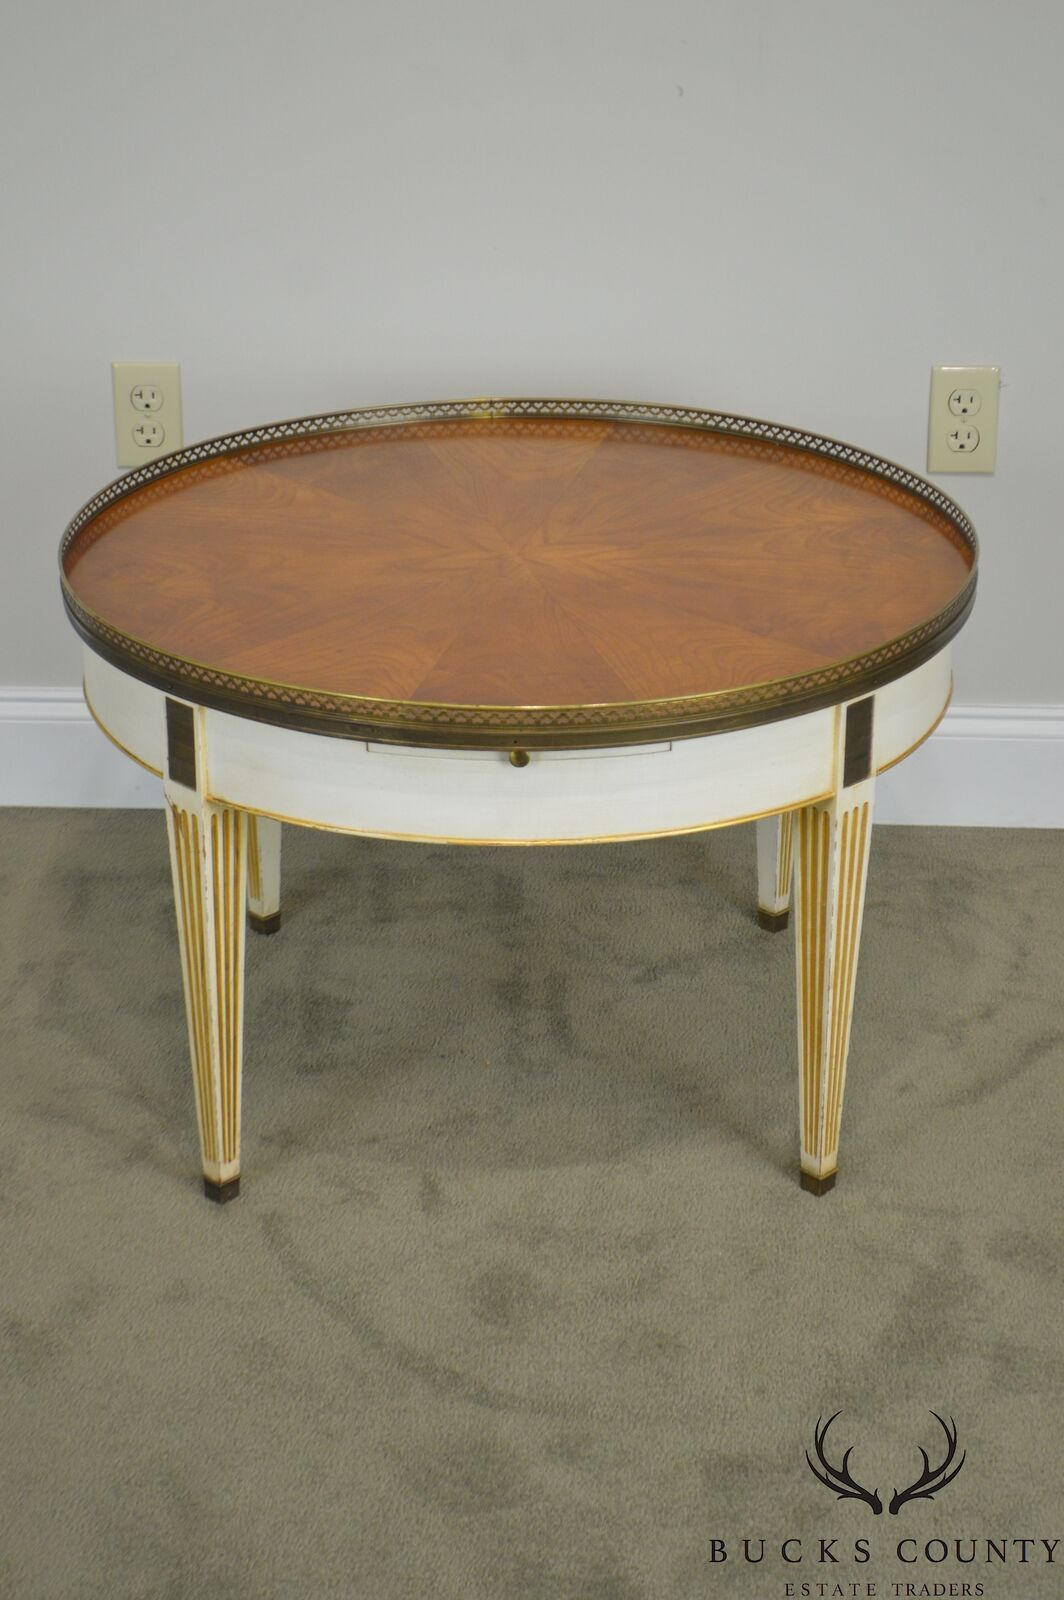 Baker Vintage Regency Directoire Style Round Painted Bouillotte Coffee Table Coffee Table Table Vintage Painting [ 1600 x 1064 Pixel ]